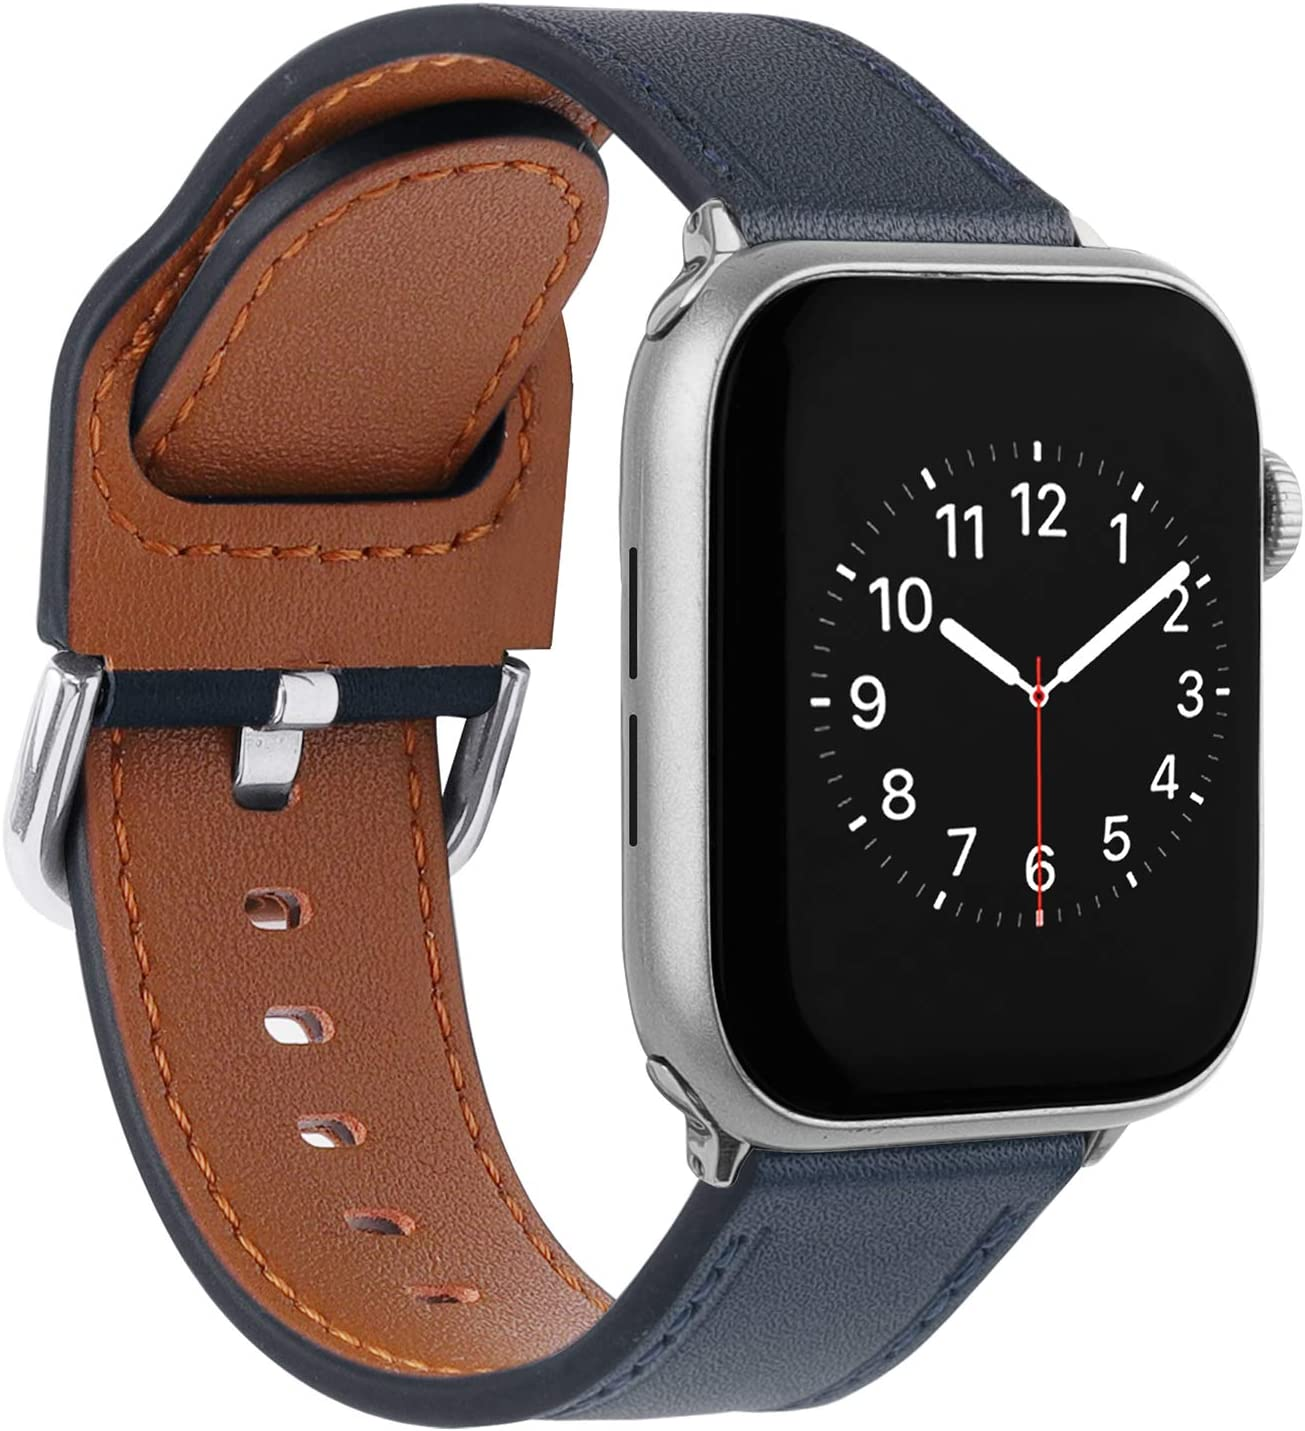 TOYOUTHS Compatible with Apple Watch Bands 38mm Series 3, Top Grain Leather Bands Replacement Straps Wristbands Women for iWatch 42mm 44mm Series 5 4, 38mm 40mm Series 3 2 1, Blue, 38mm, Small